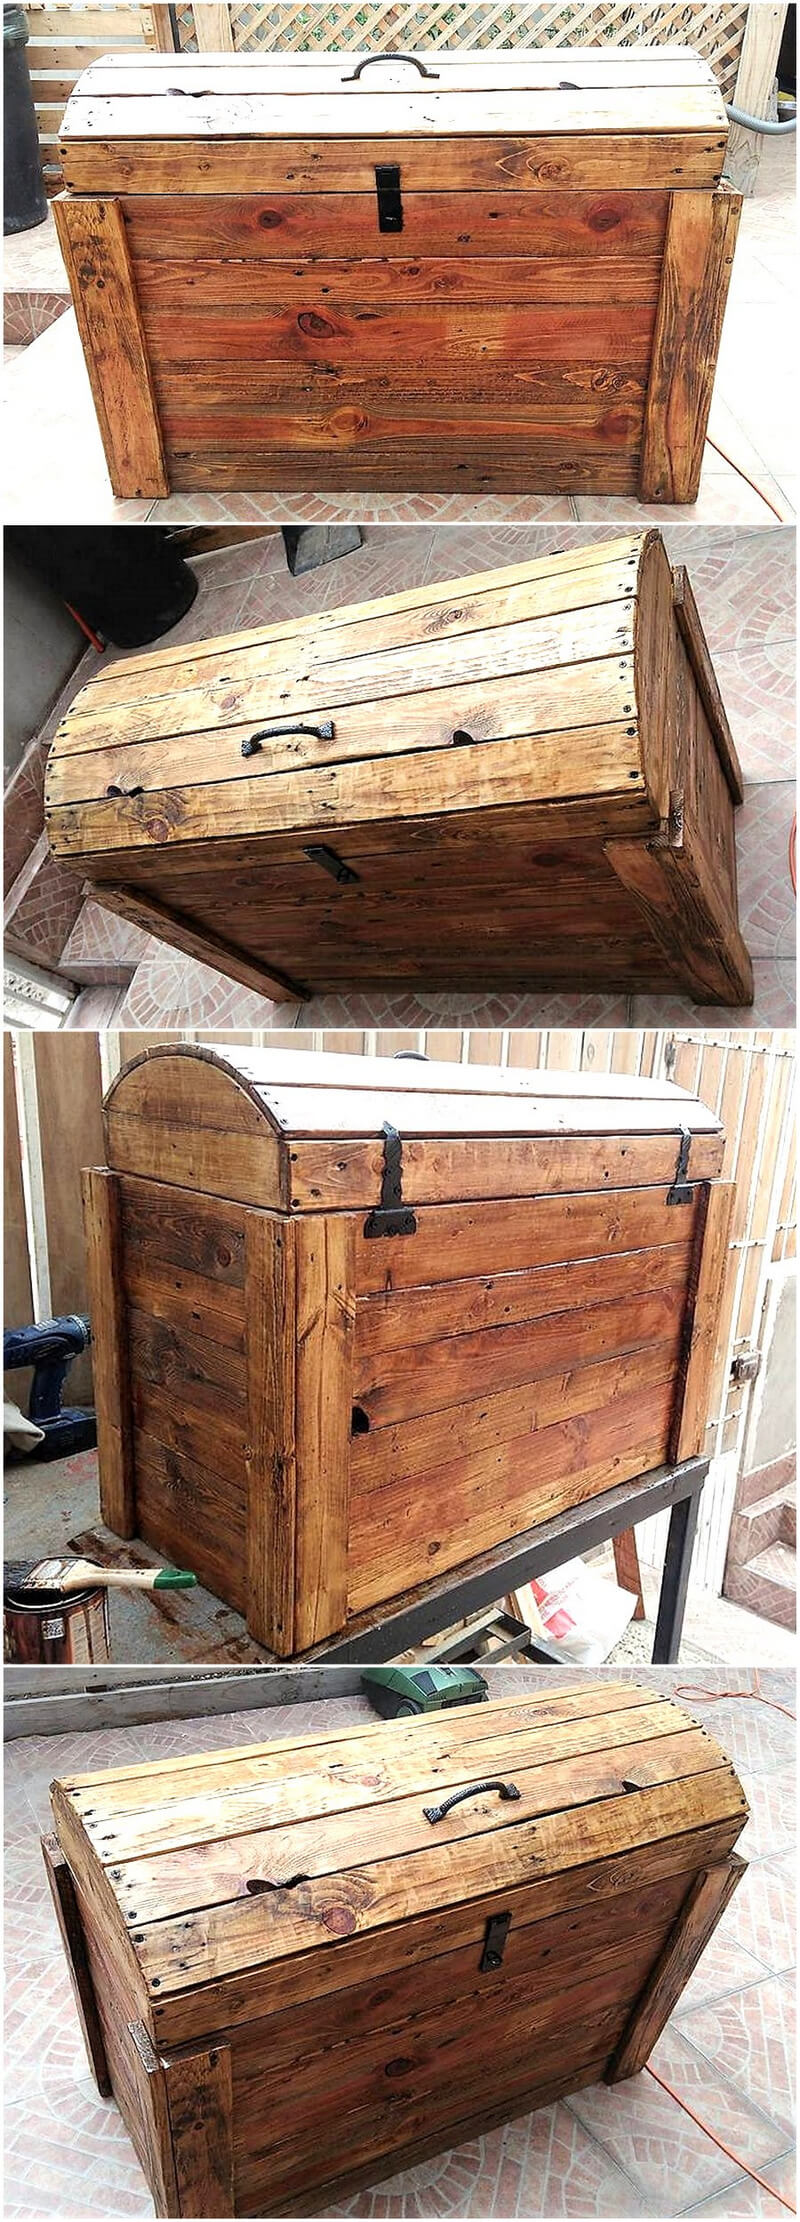 recycled pallets wooden trunk